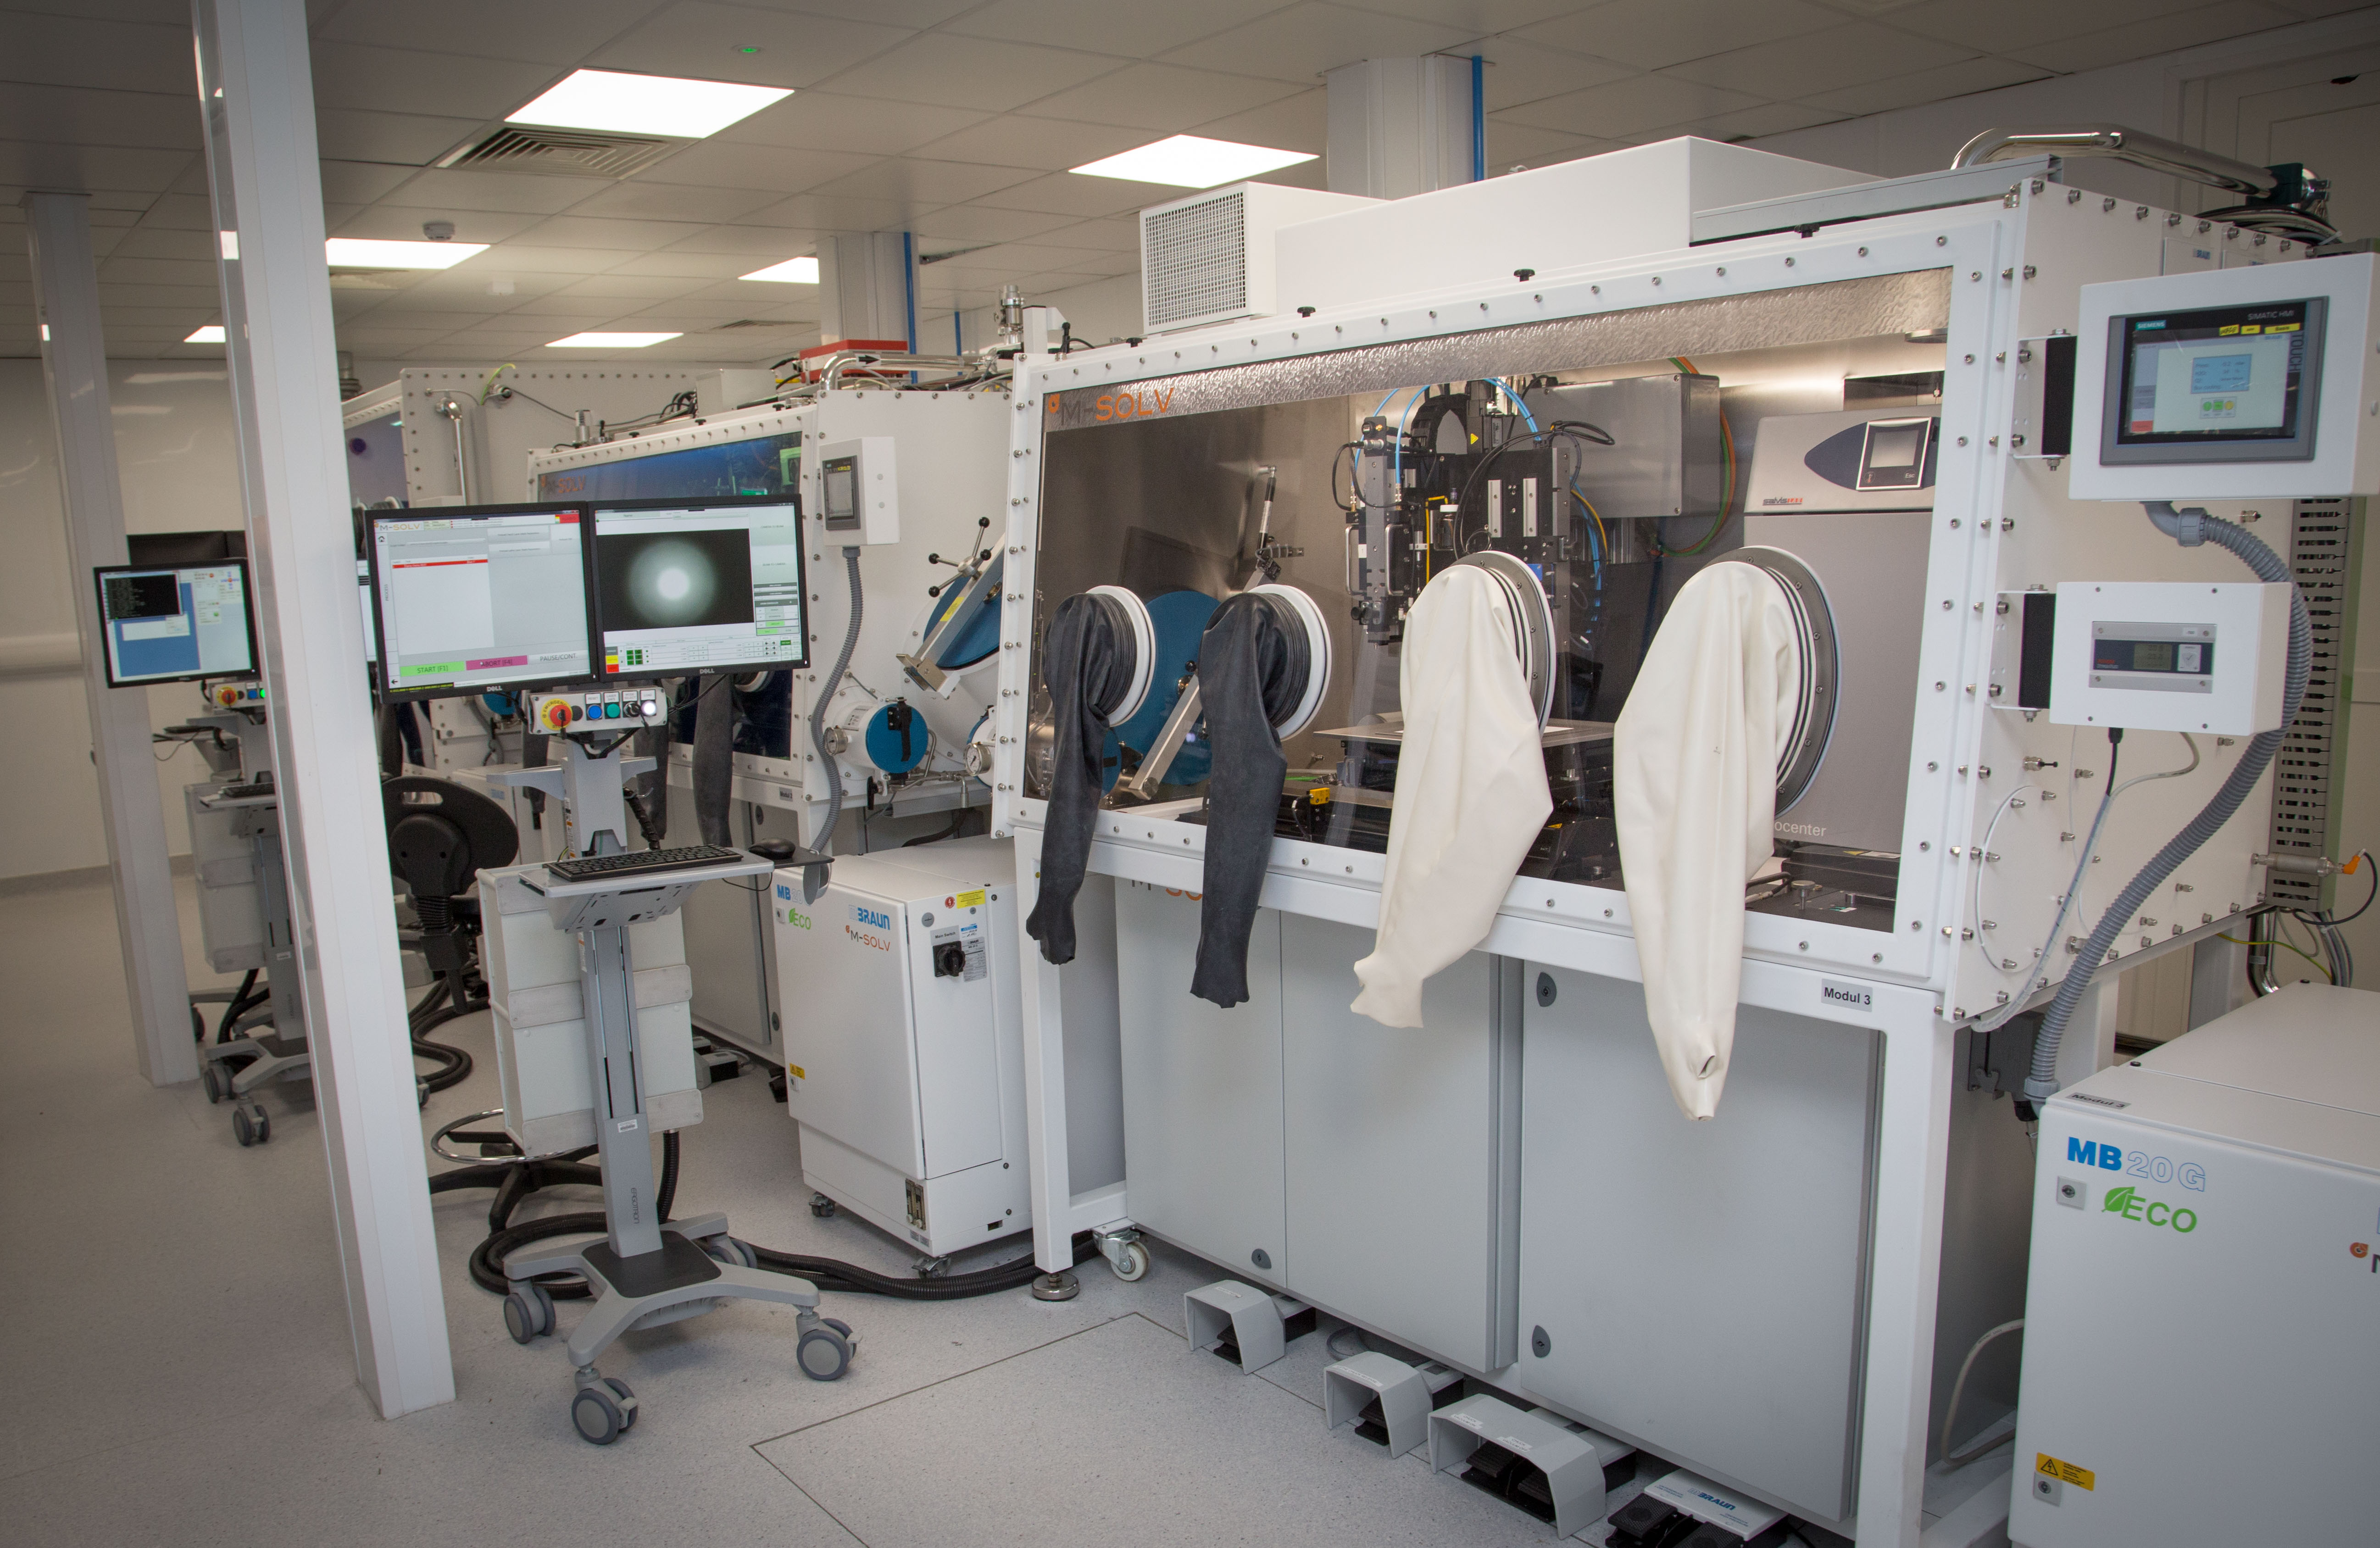 New Facilities Established In Nui Galway To Accelerate The Development Of Next Generation Biomaterials And Advanced Manufacturing Technologies